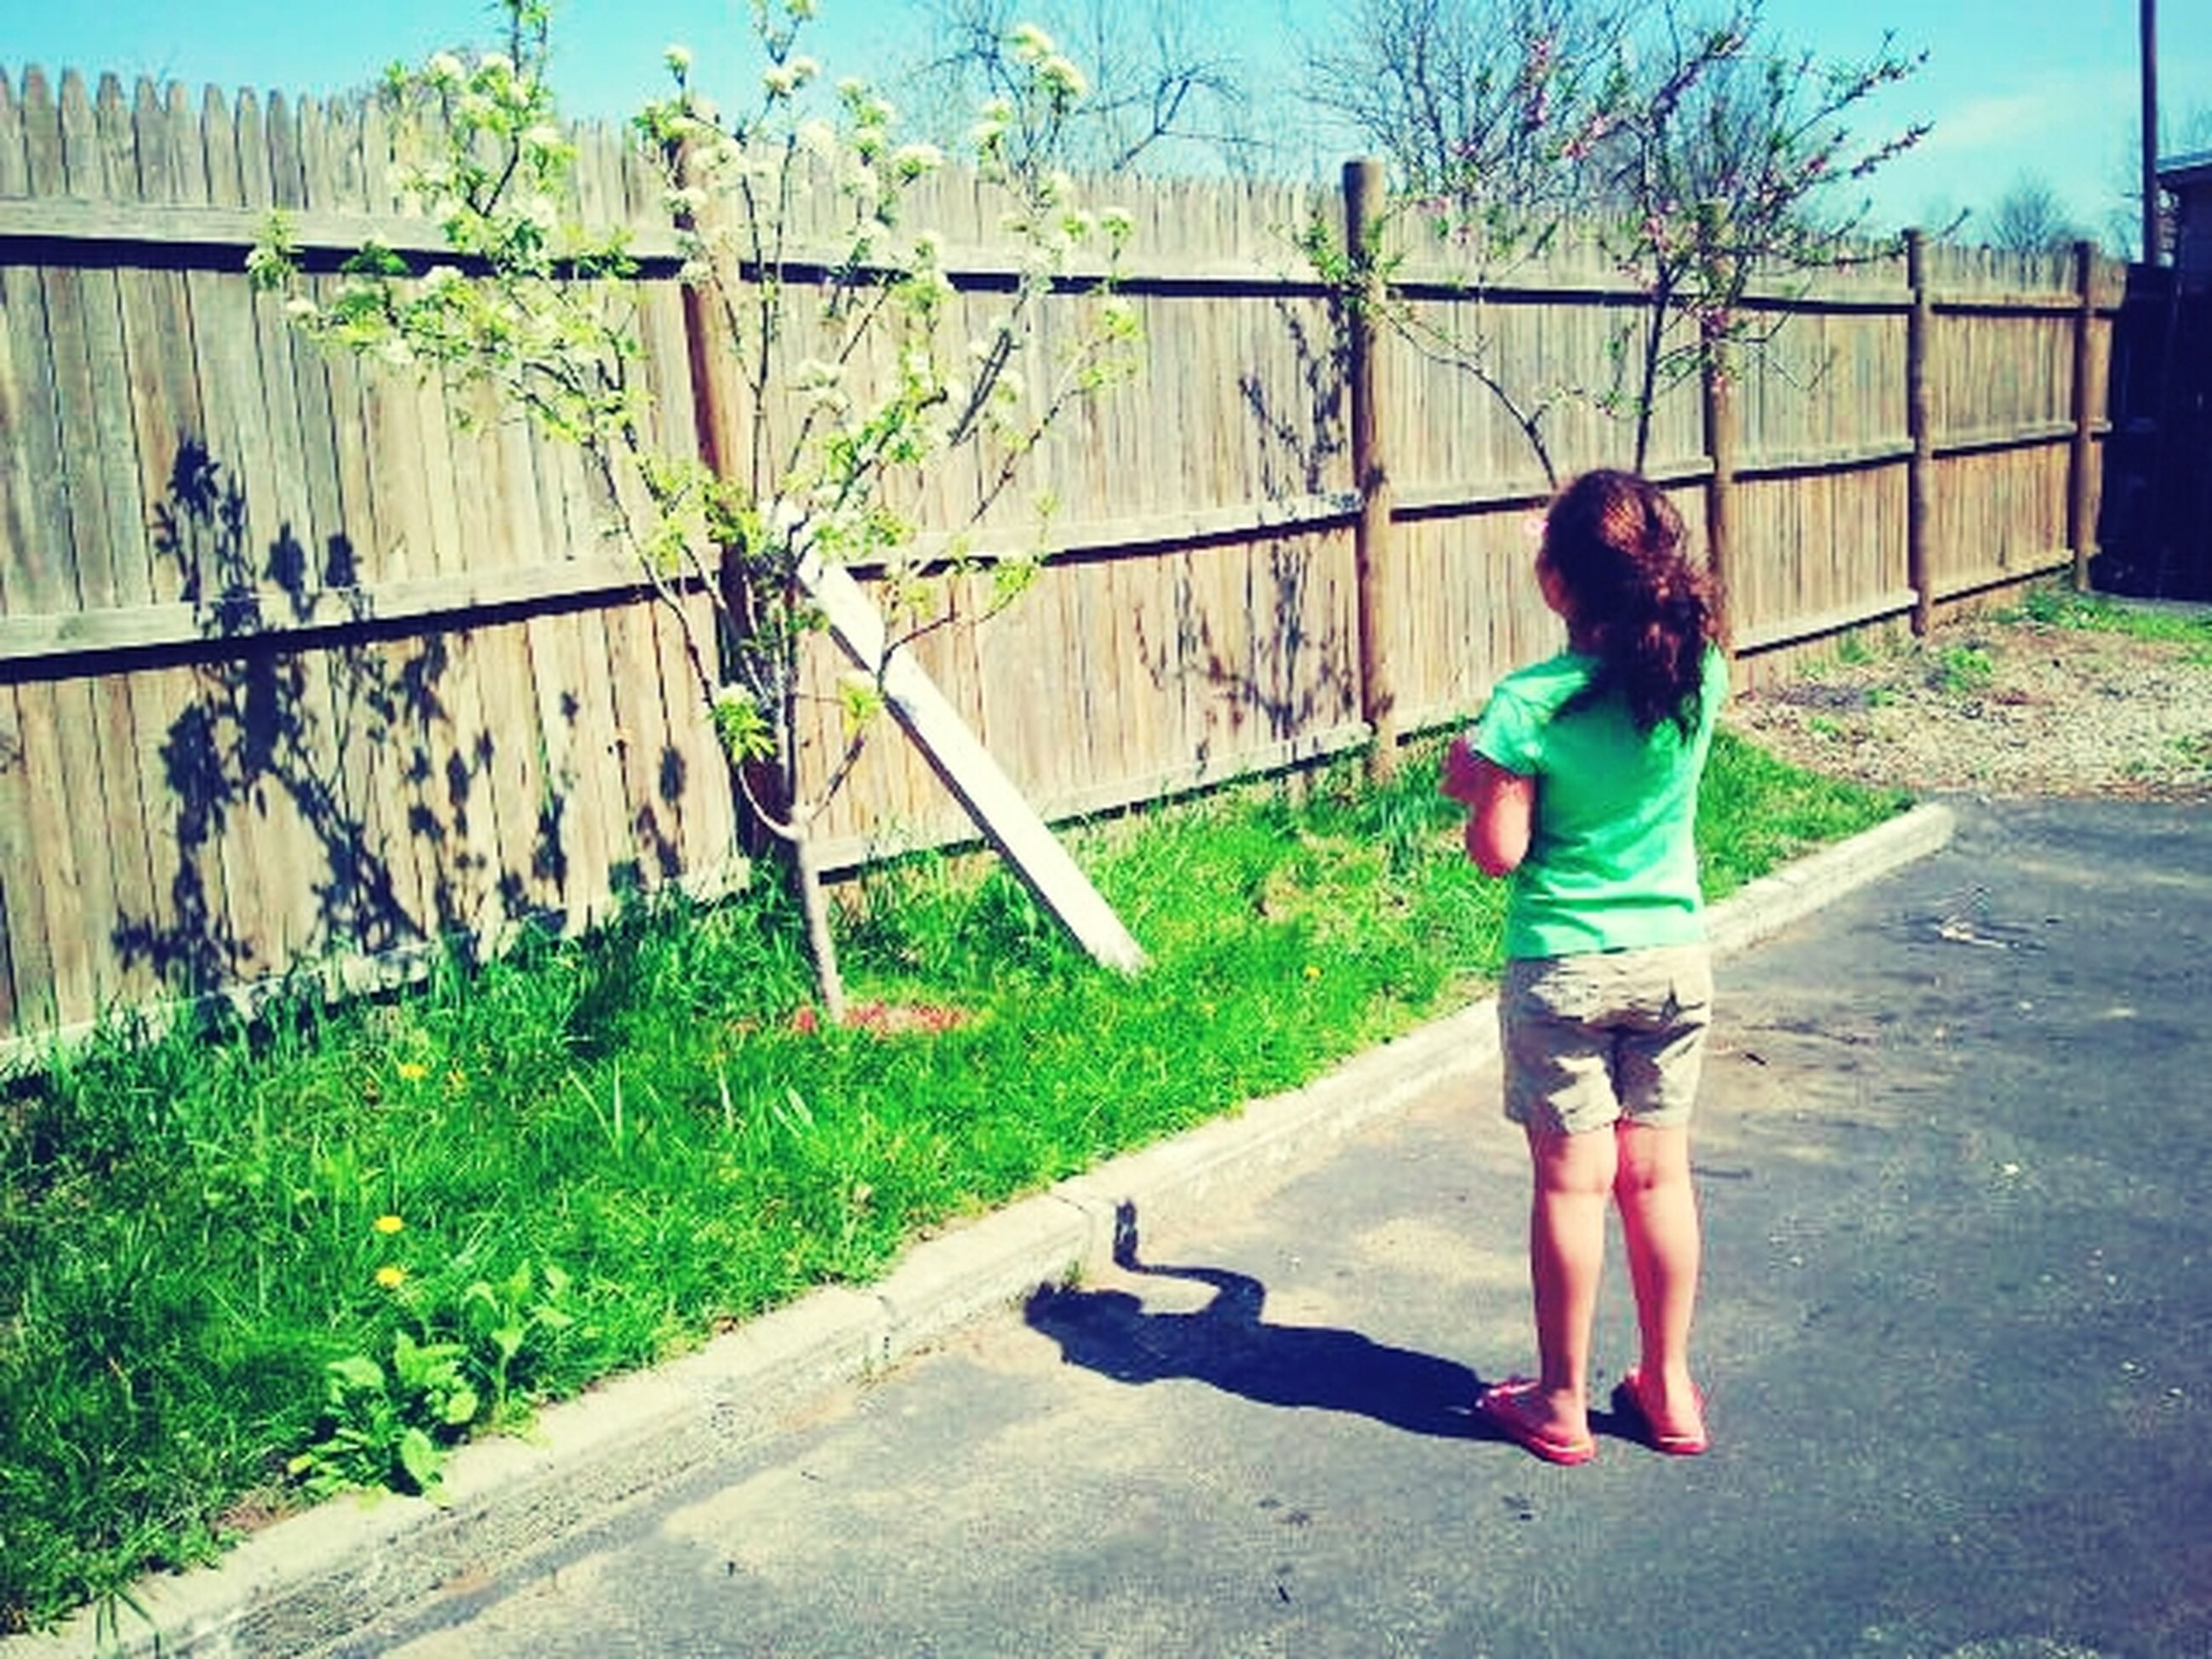 childhood, full length, elementary age, lifestyles, casual clothing, boys, person, leisure activity, girls, innocence, fence, sunlight, standing, day, playground, playing, playful, built structure